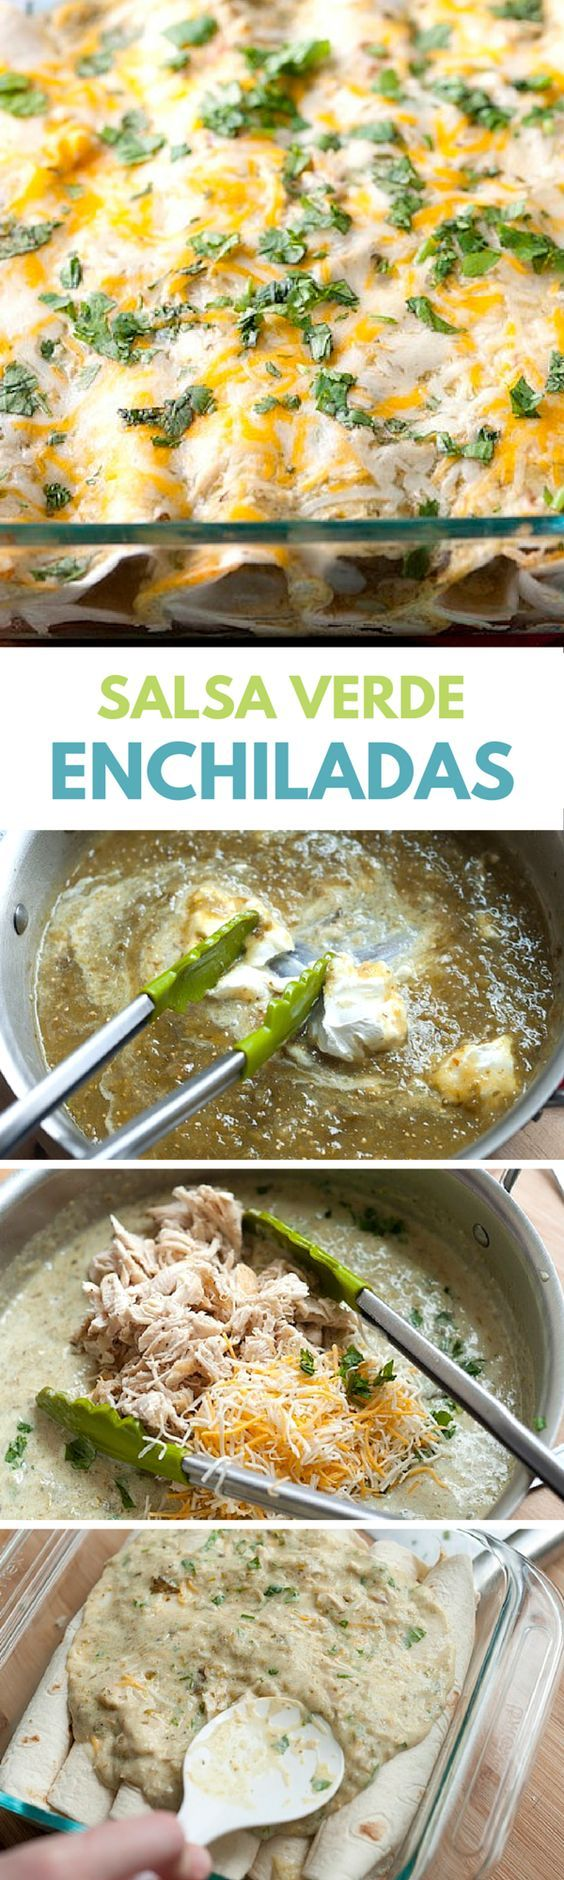 It's so simple to make this Chicken Enchiladas recipe with salsa verde, chicken, sour cream, cheese and cilantro. A quick and easy dinner! #salsa #chicken #enchiladas